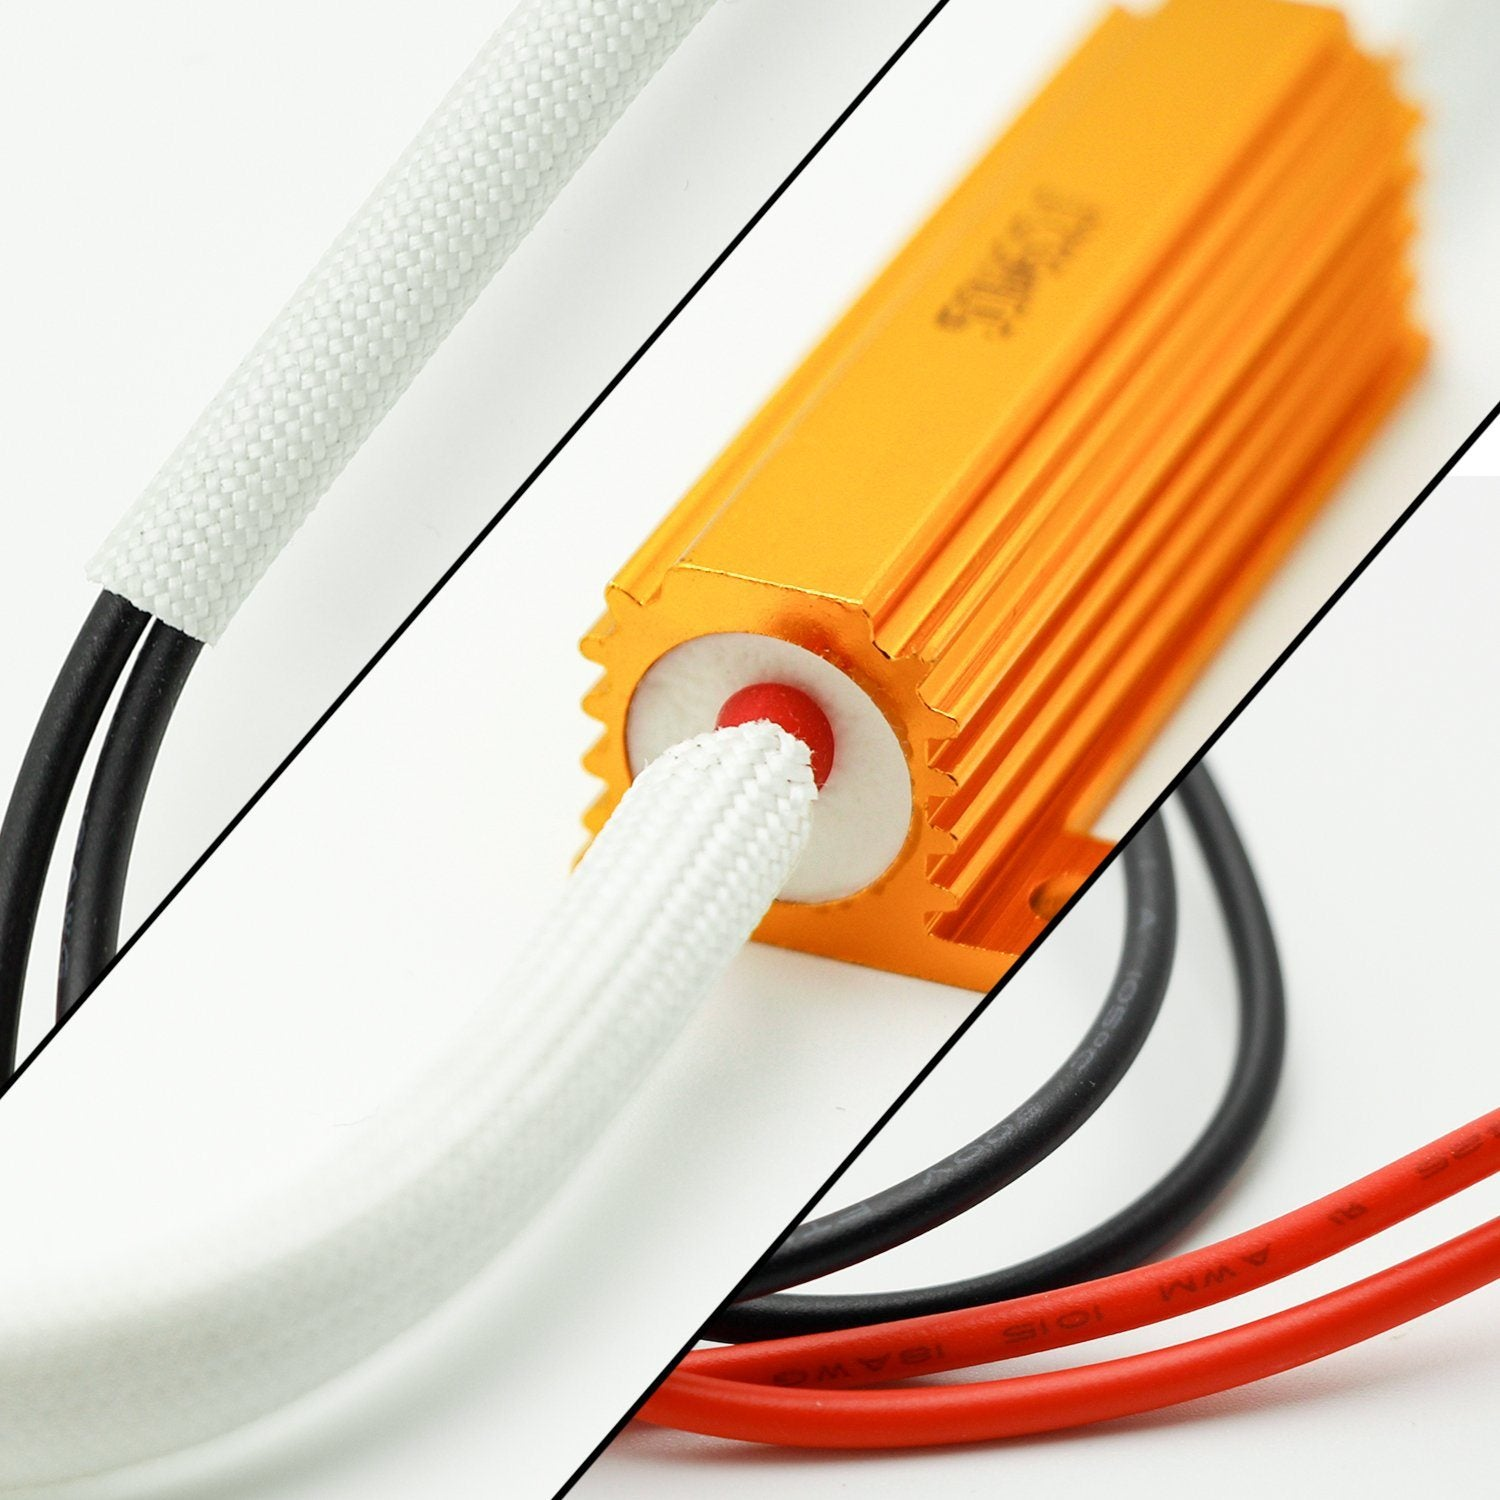 H7 Hid Led Kit 50w 6ohm Resistor Warning Canceler Relay Harness 194 Wiring Adapter